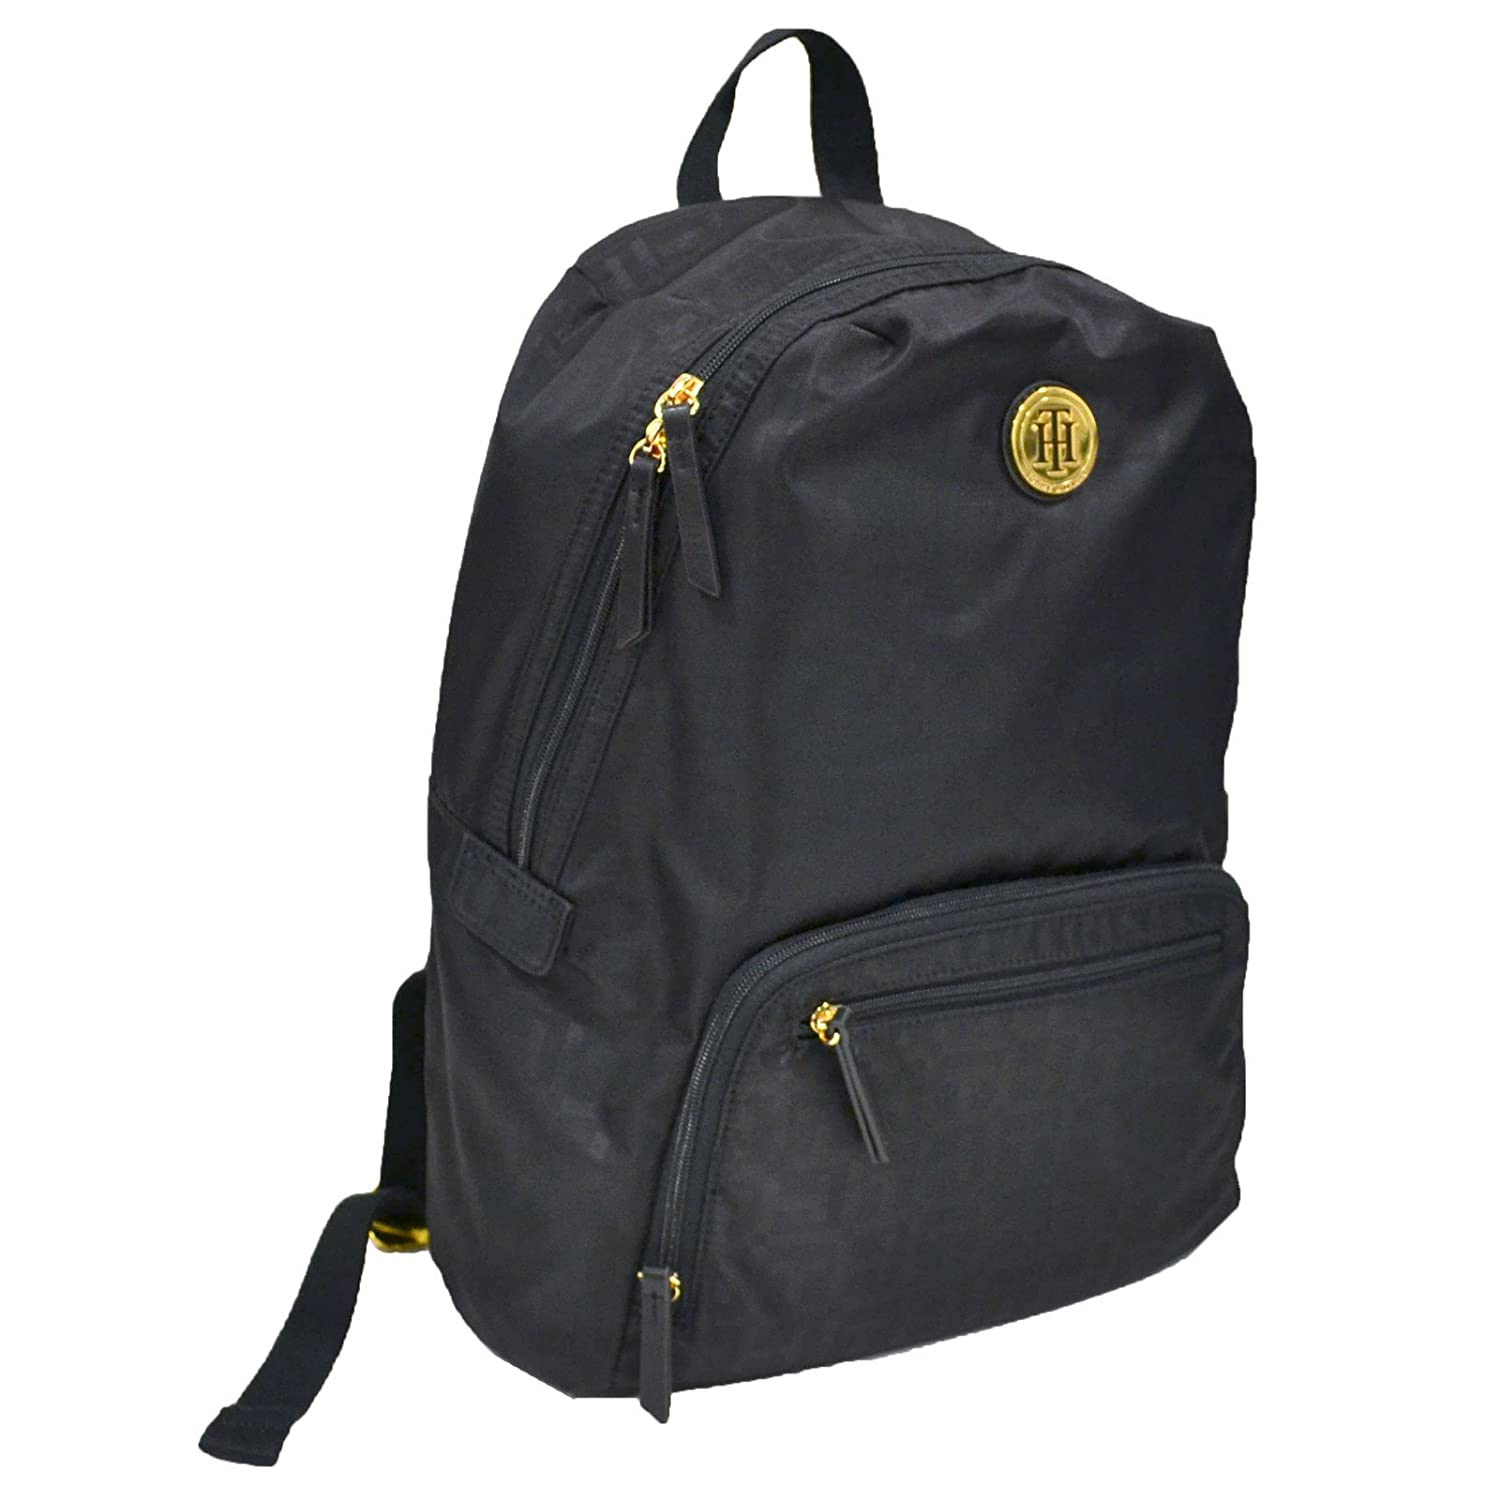 a32579887a0a Amazon.com: Tommy Hilfiger Nylon Laptop Backpack (Black): Computers &  Accessories